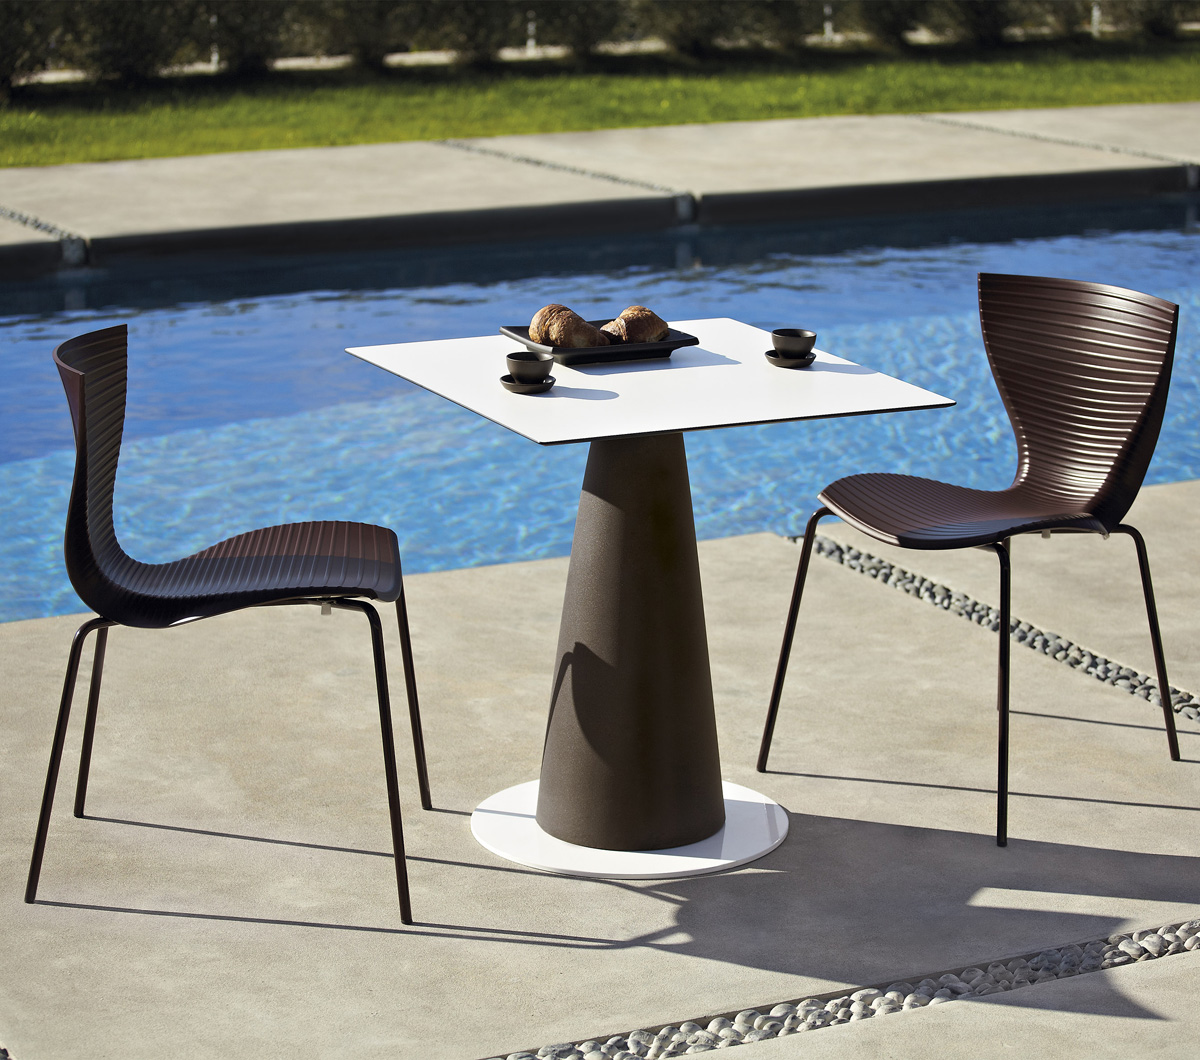 Hopla Square bar table from Slide